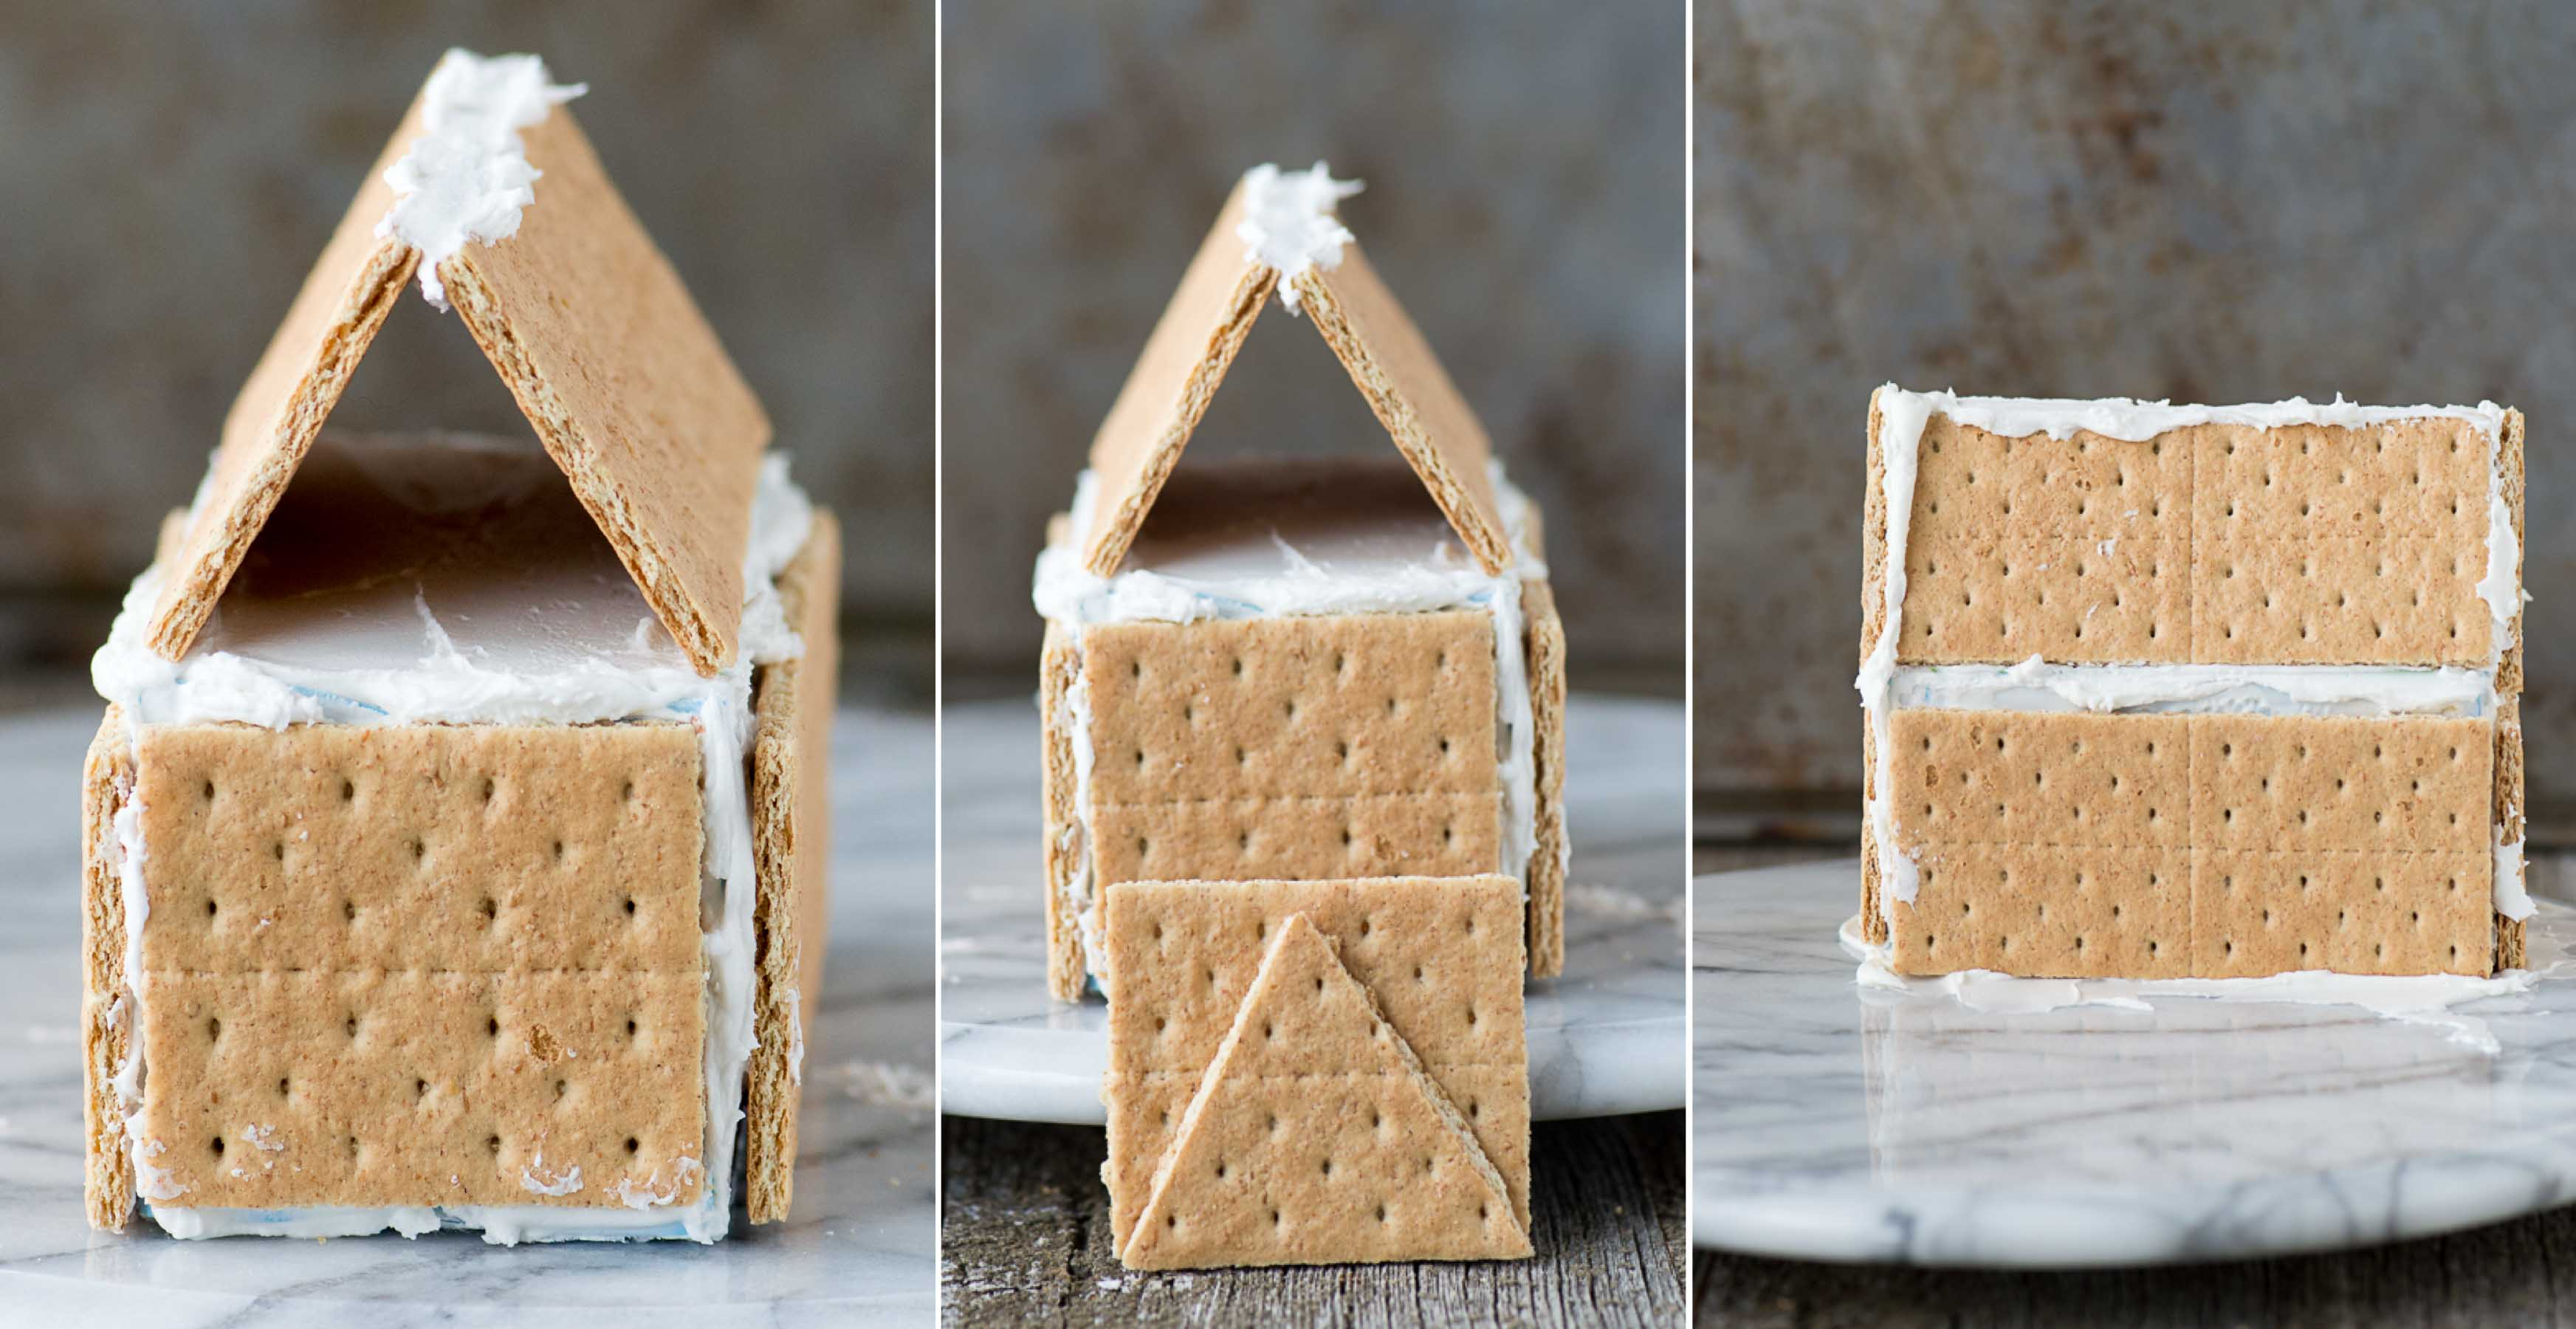 Nut-Gingerbread-House-Collage-3